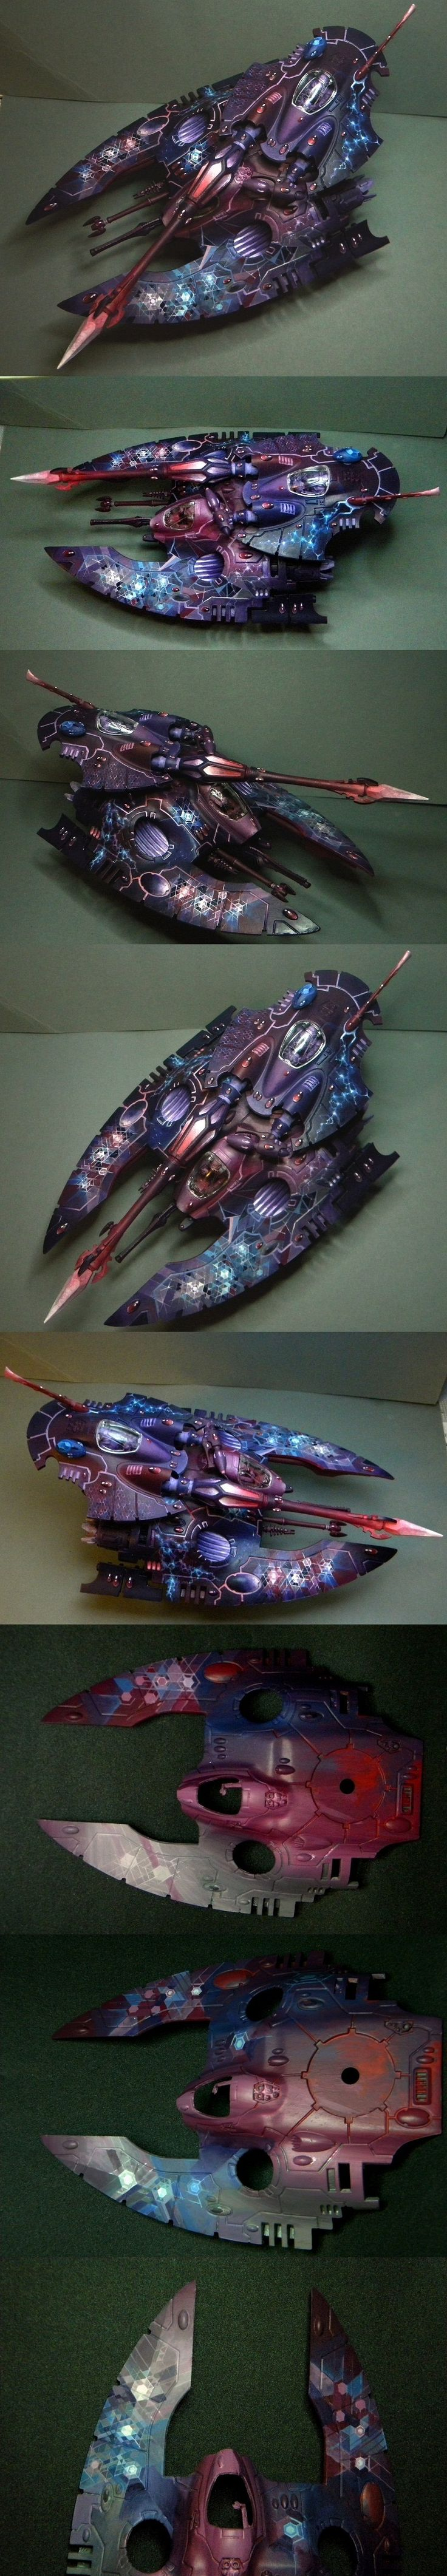 40k - 'Dark Crystal' Eldar Fire Prism by hors